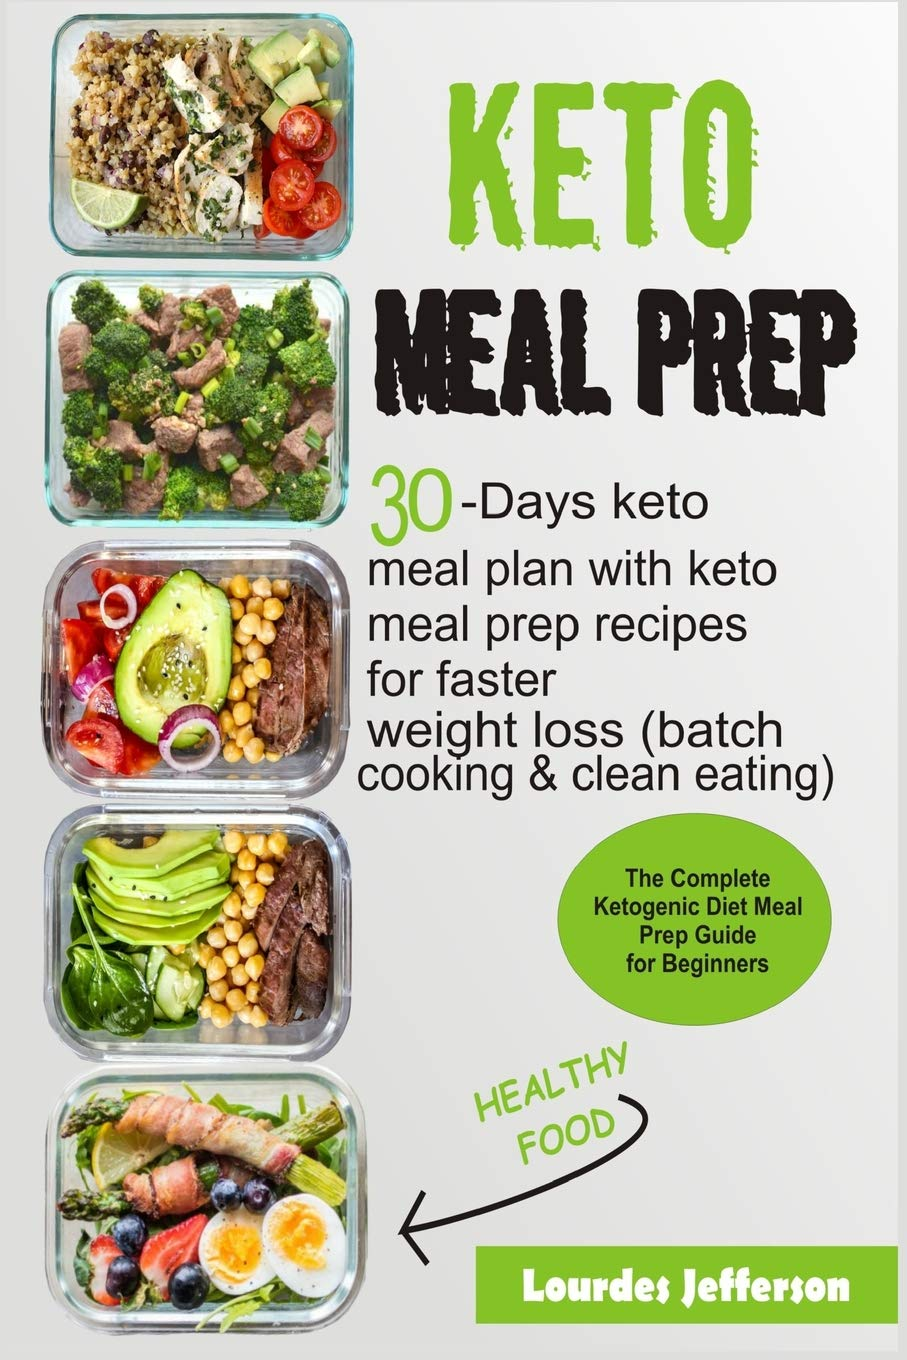 Amazon Com Keto Meal Prep The Complete Ketogenic Diet Meal Prep Guide For Beginners 30 Days Keto Meal Plan With Keto Meal Prep Recipes For Faster Weight Loss Batch Cooking Clean Eating